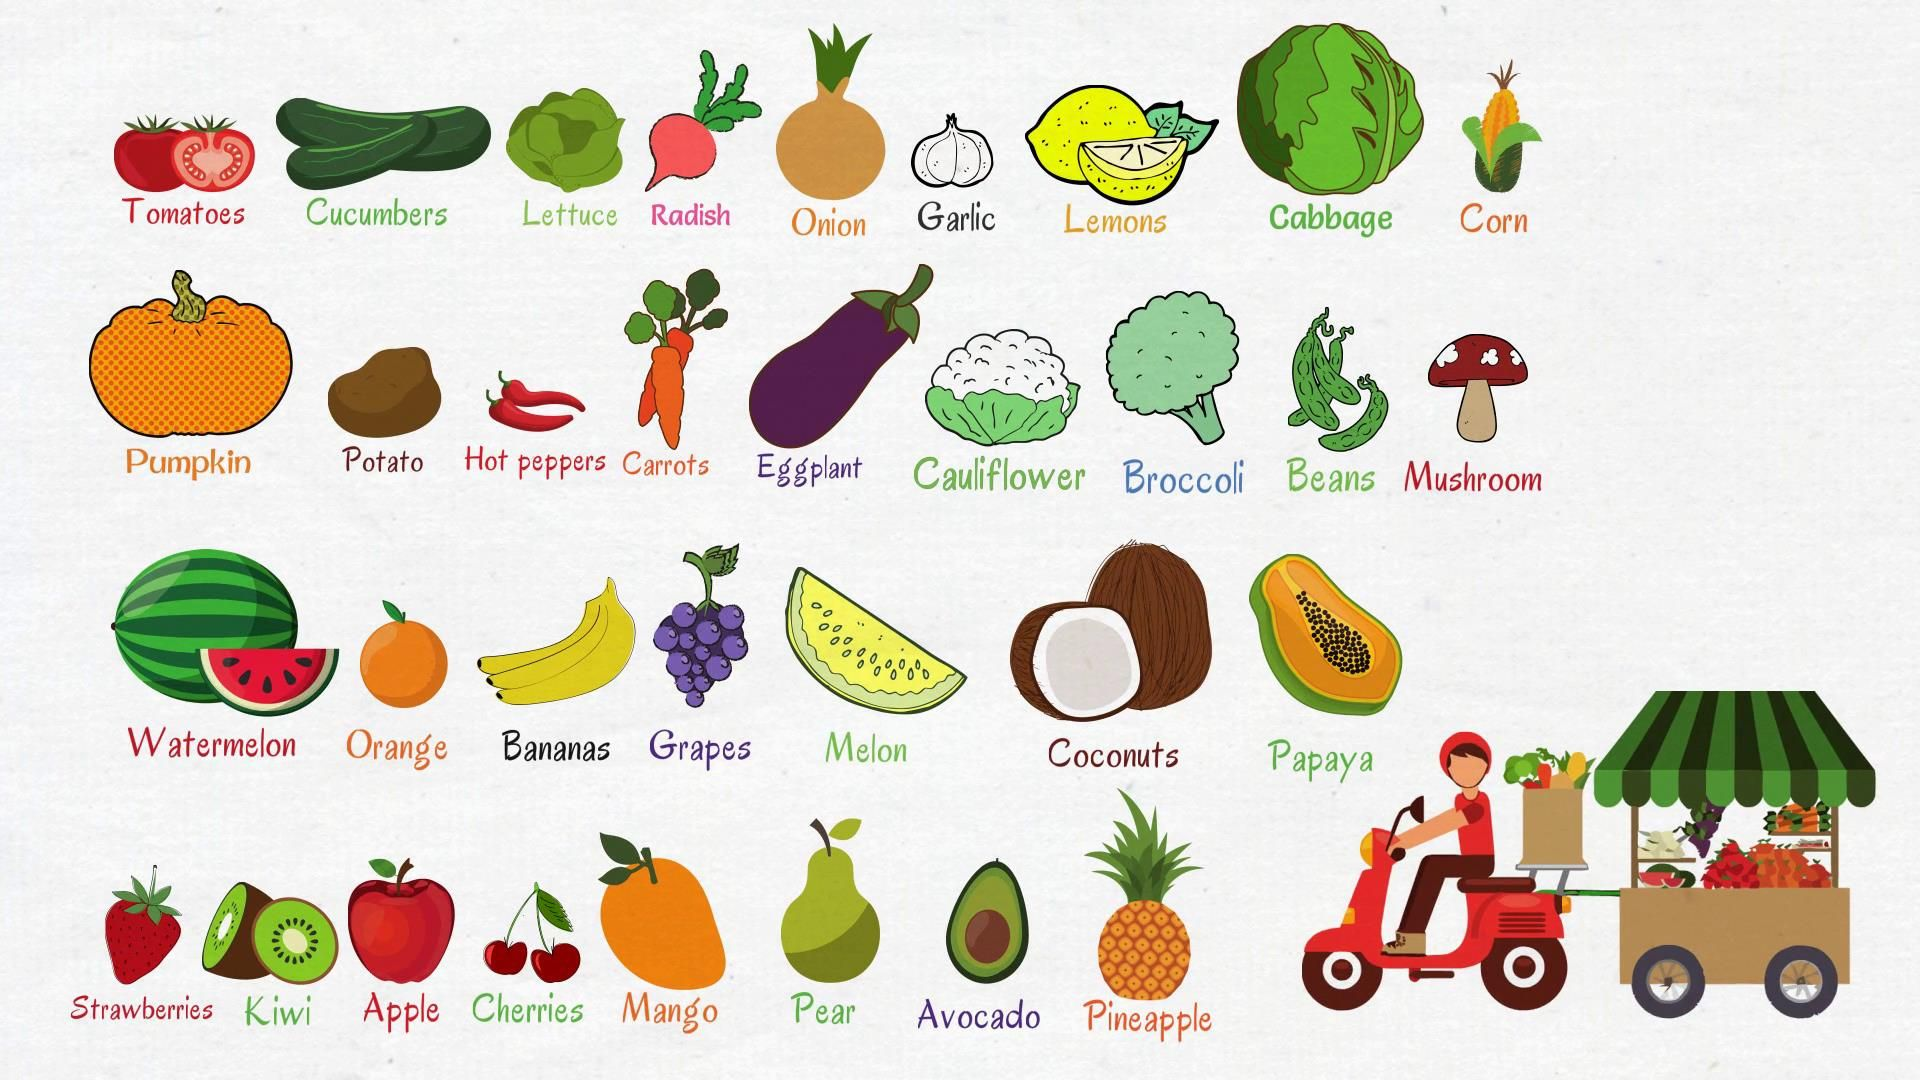 A Fruit Is The Seed Bearing Structure In Flowering Plants